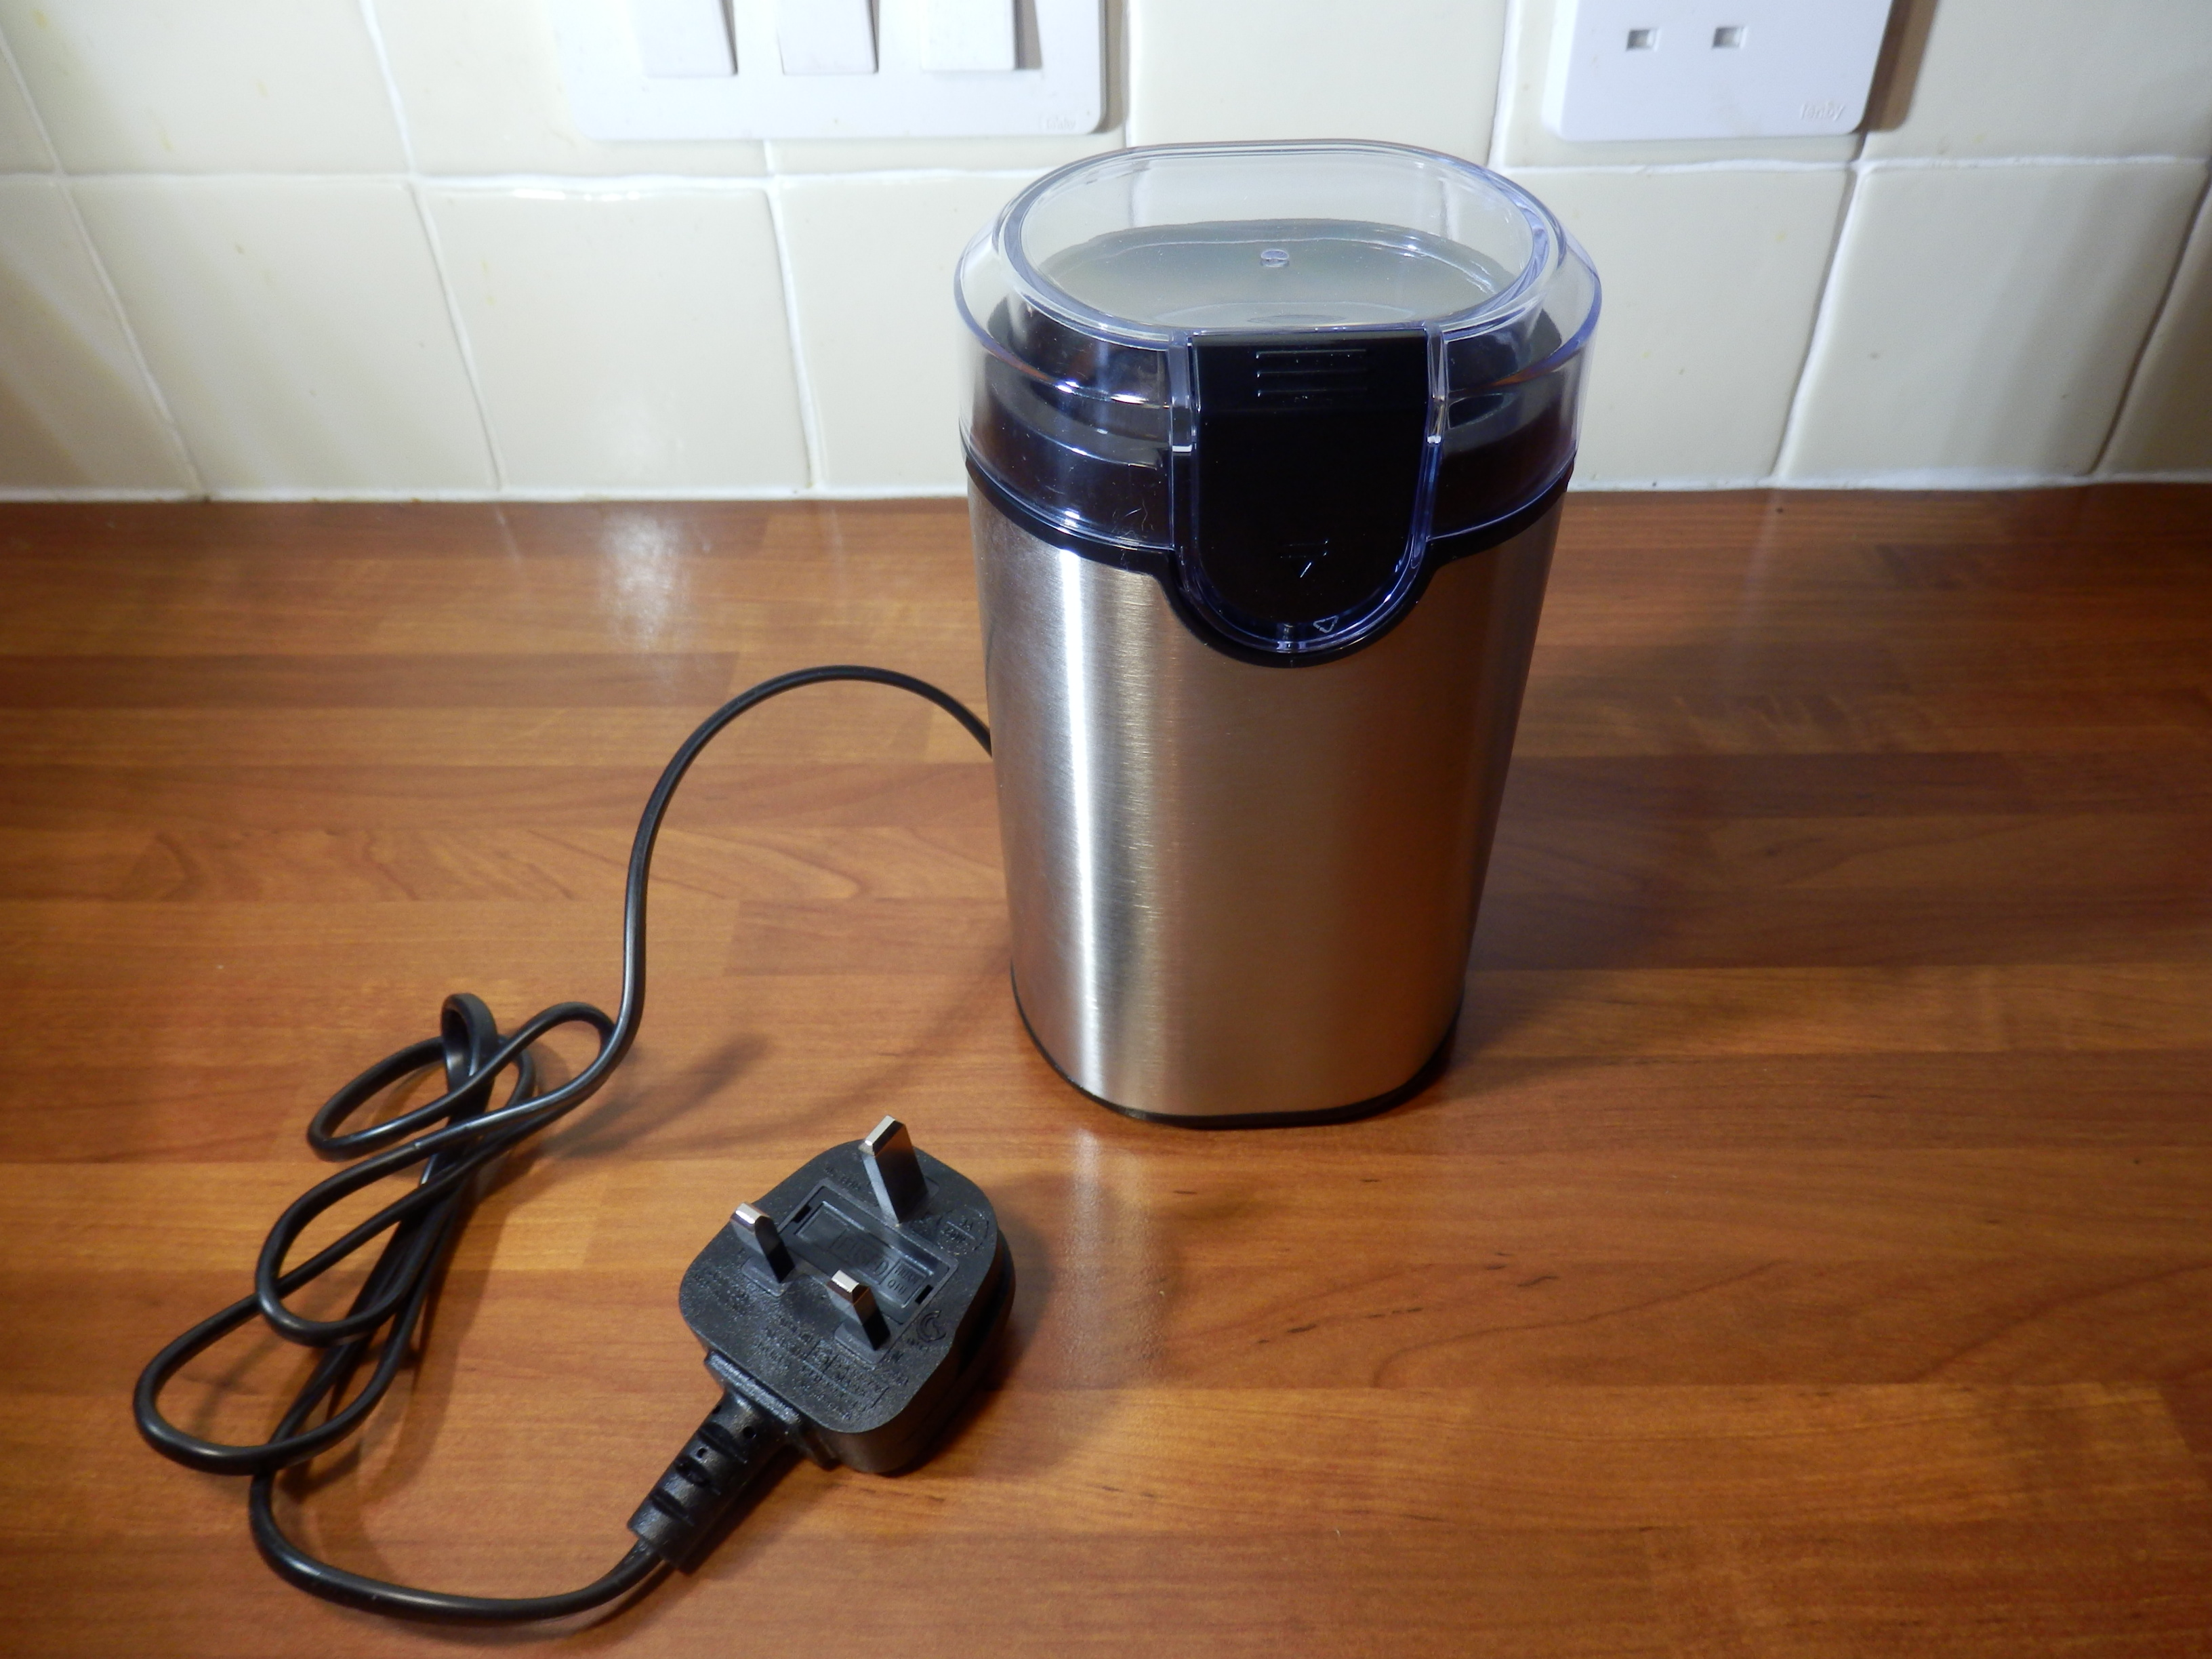 Morpilot Electric Coffee Grinder, 150W, Stainless Steel Blades Including a Cleaning Brush